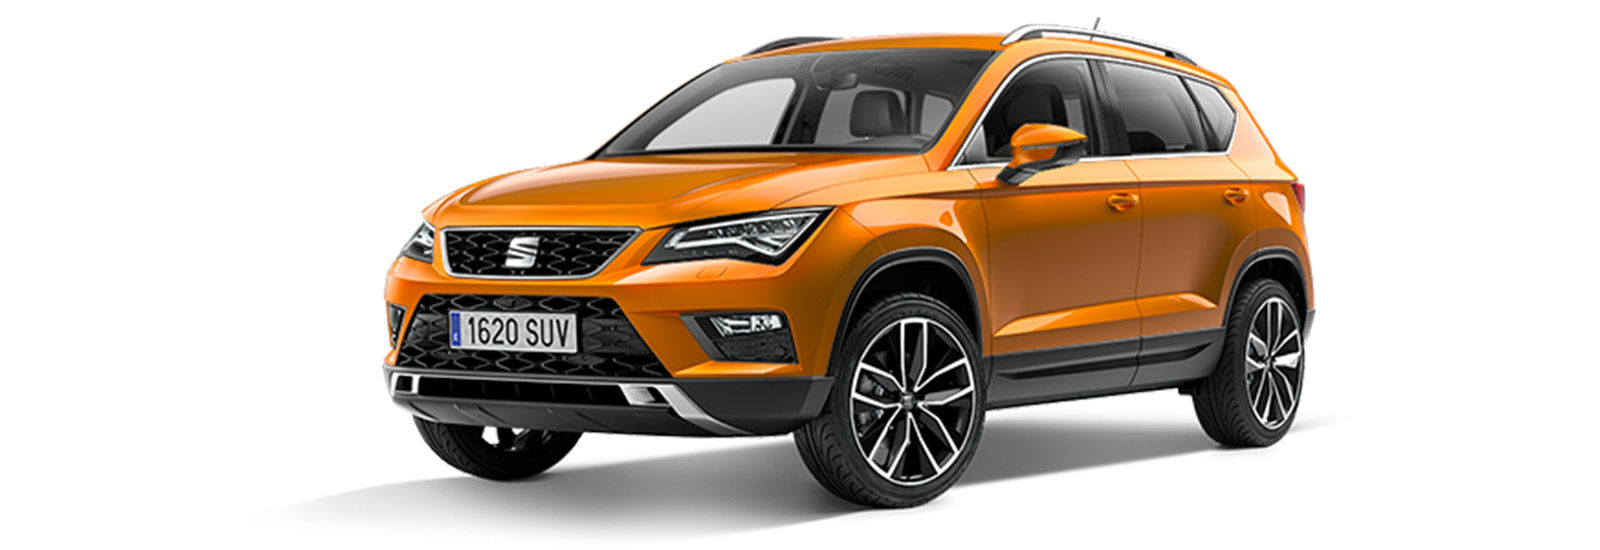 Seat Ateca Colours Guide And Prices Carwow